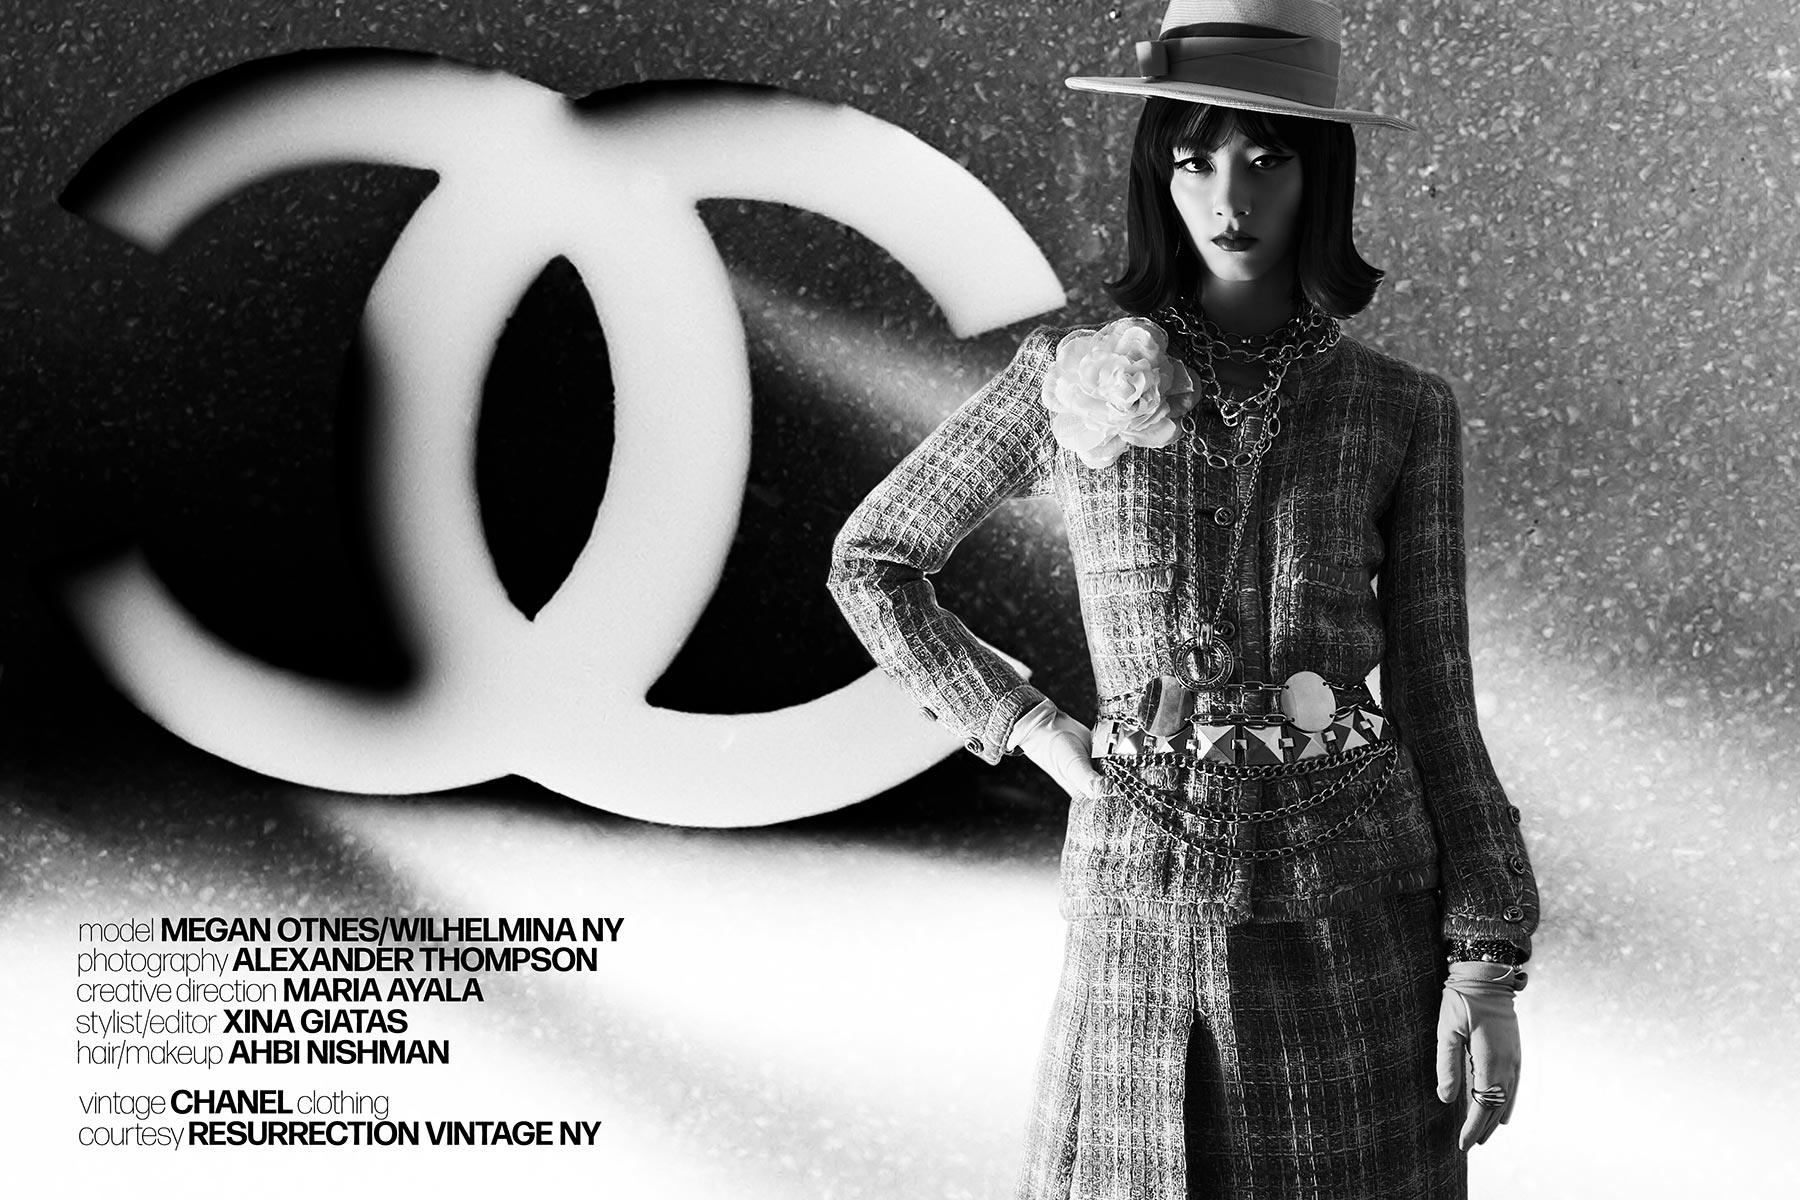 Wilhelmina NY model Megan Otnes in vintage Chanel for Ponyboy magazine. Photography by Alexander Thompson.